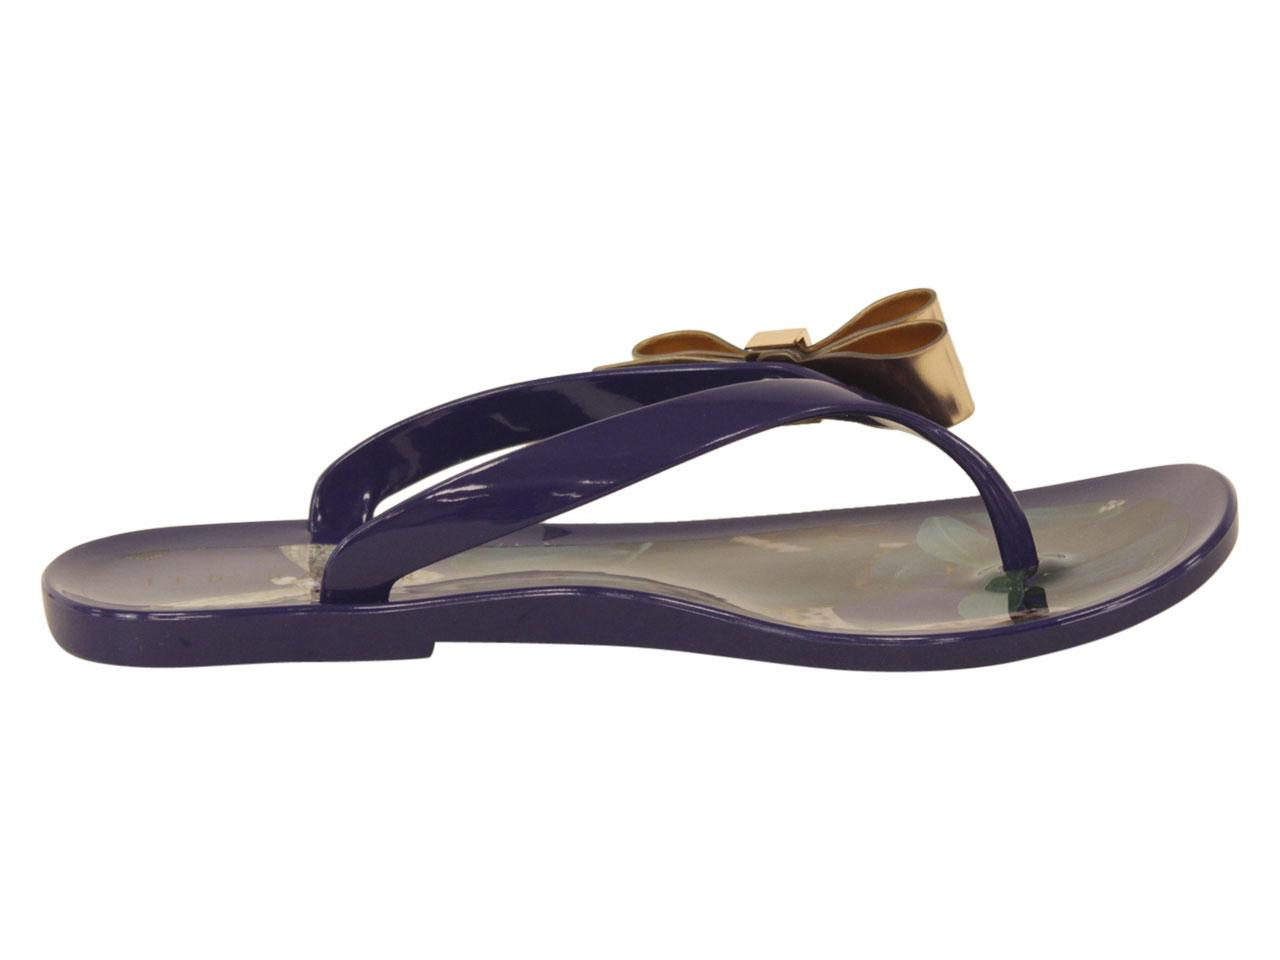 39b7c53eb ... Suzzip Flip Flops Sandals Shoes by Ted Baker. 1234567